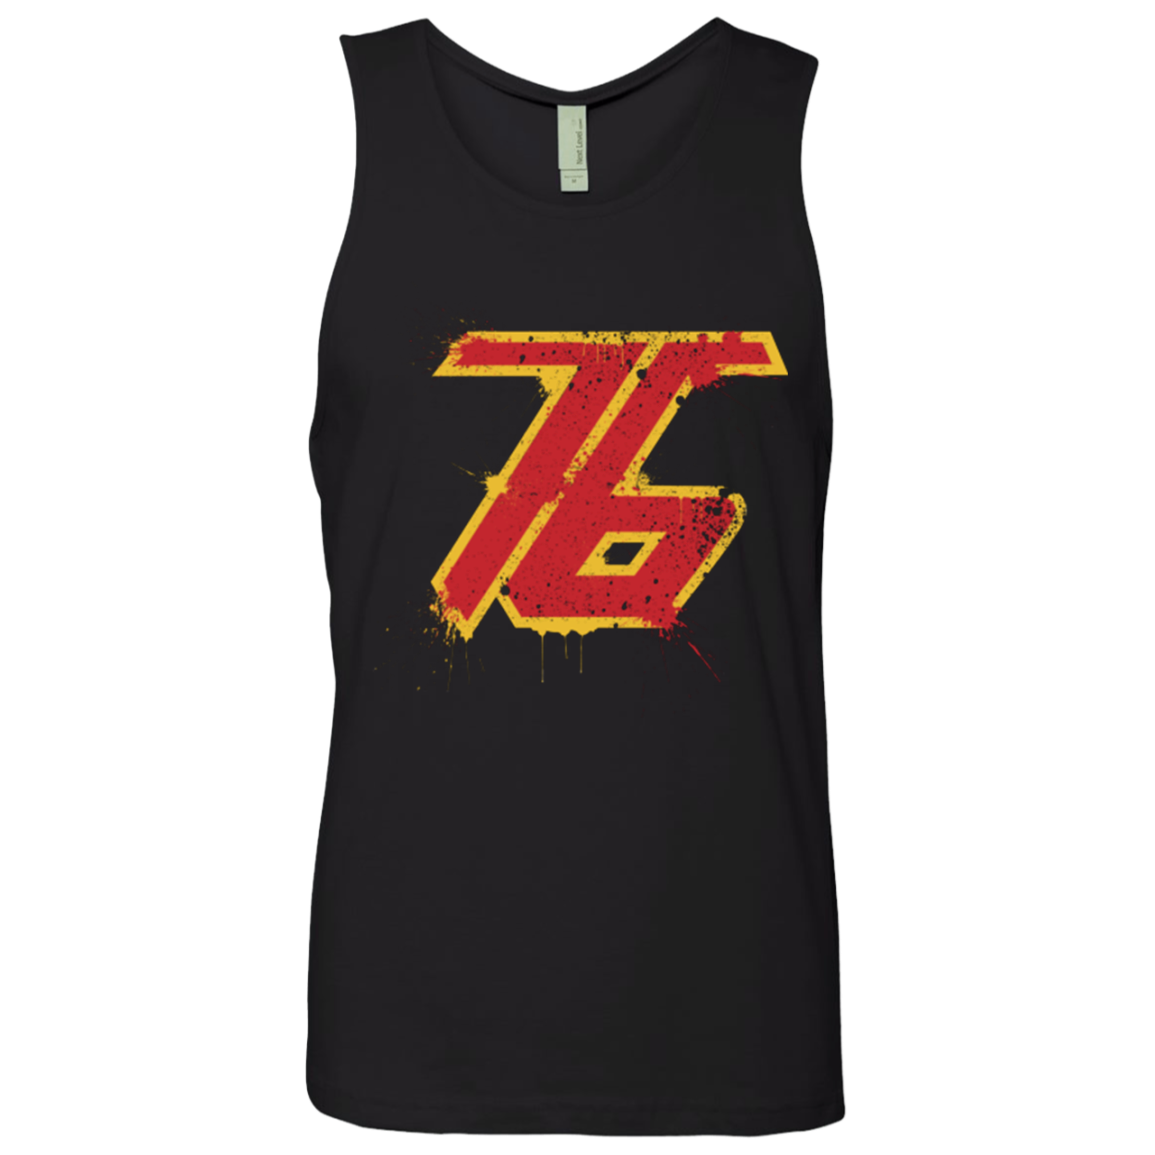 Soldier 76 Men's Premium Tank Top